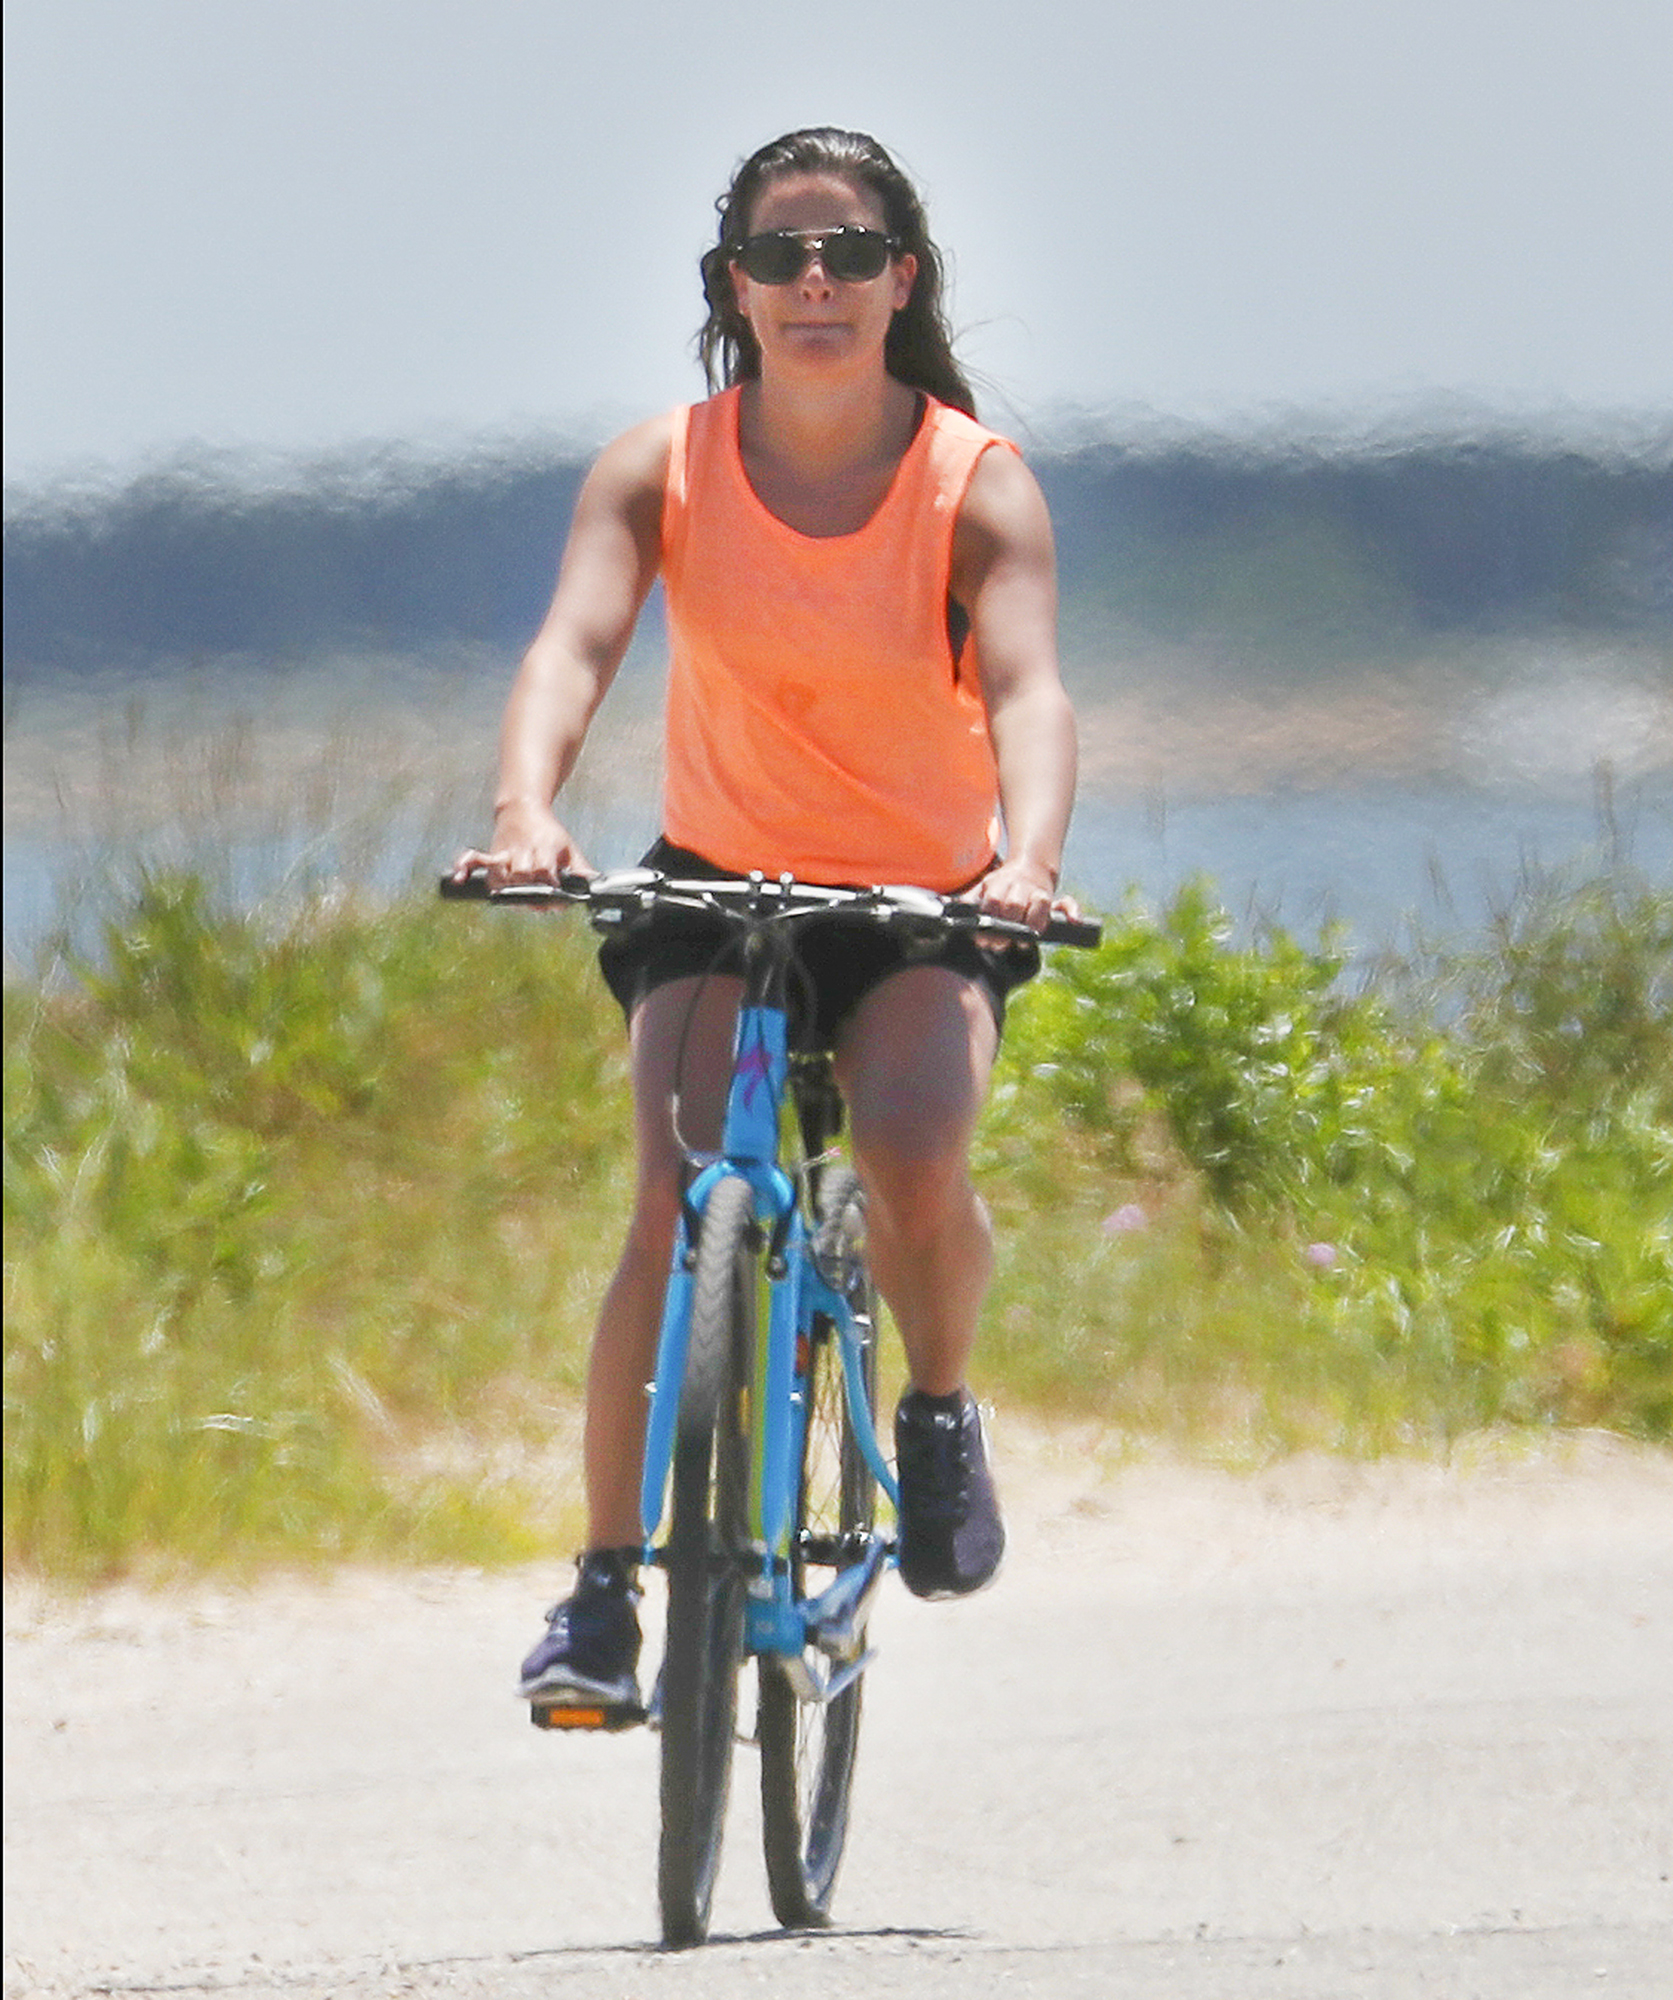 EXCLUSIVE: Lea Michele and Zandy Reich Head Out for a Beach Bike Ride in the Hamptons.